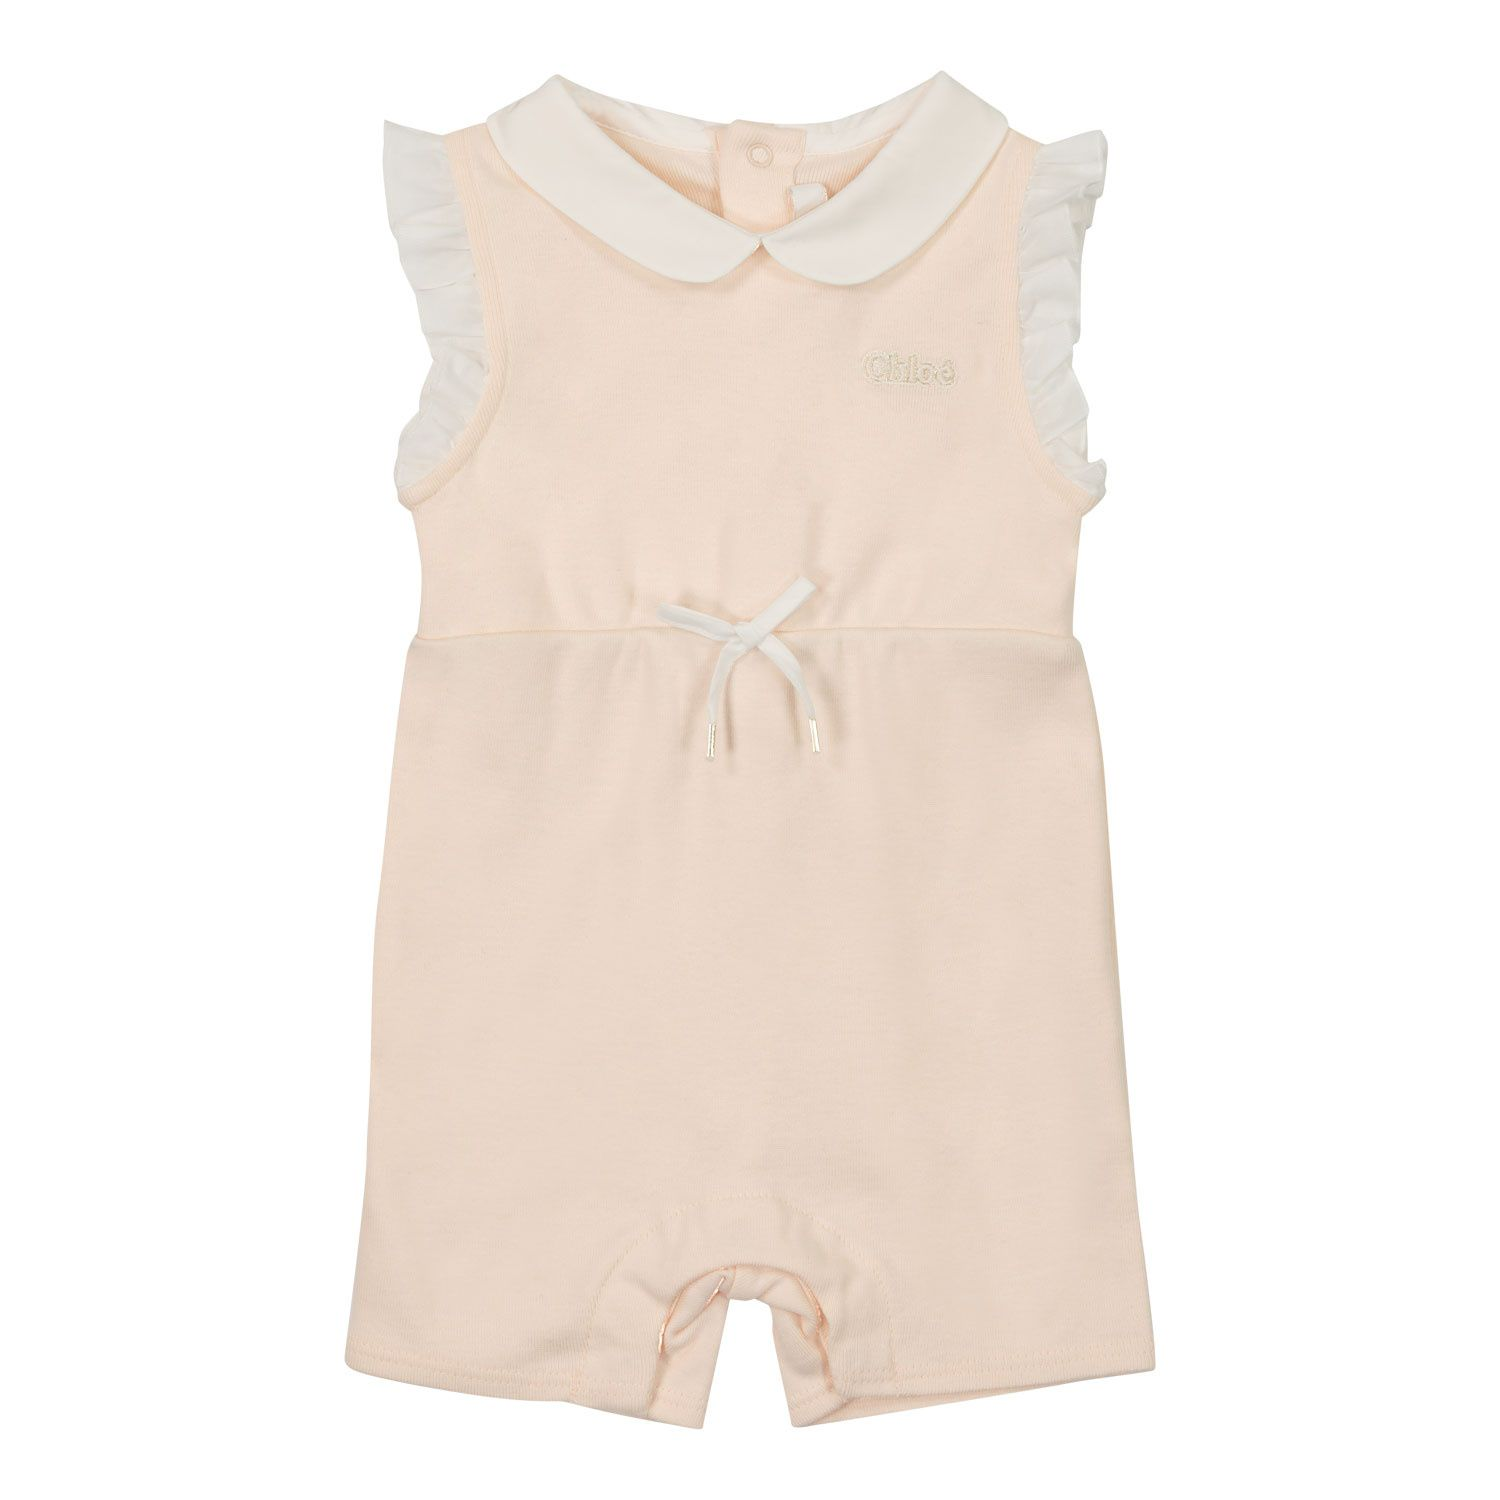 Picture of Chloé C94392 baby playsuit salmon